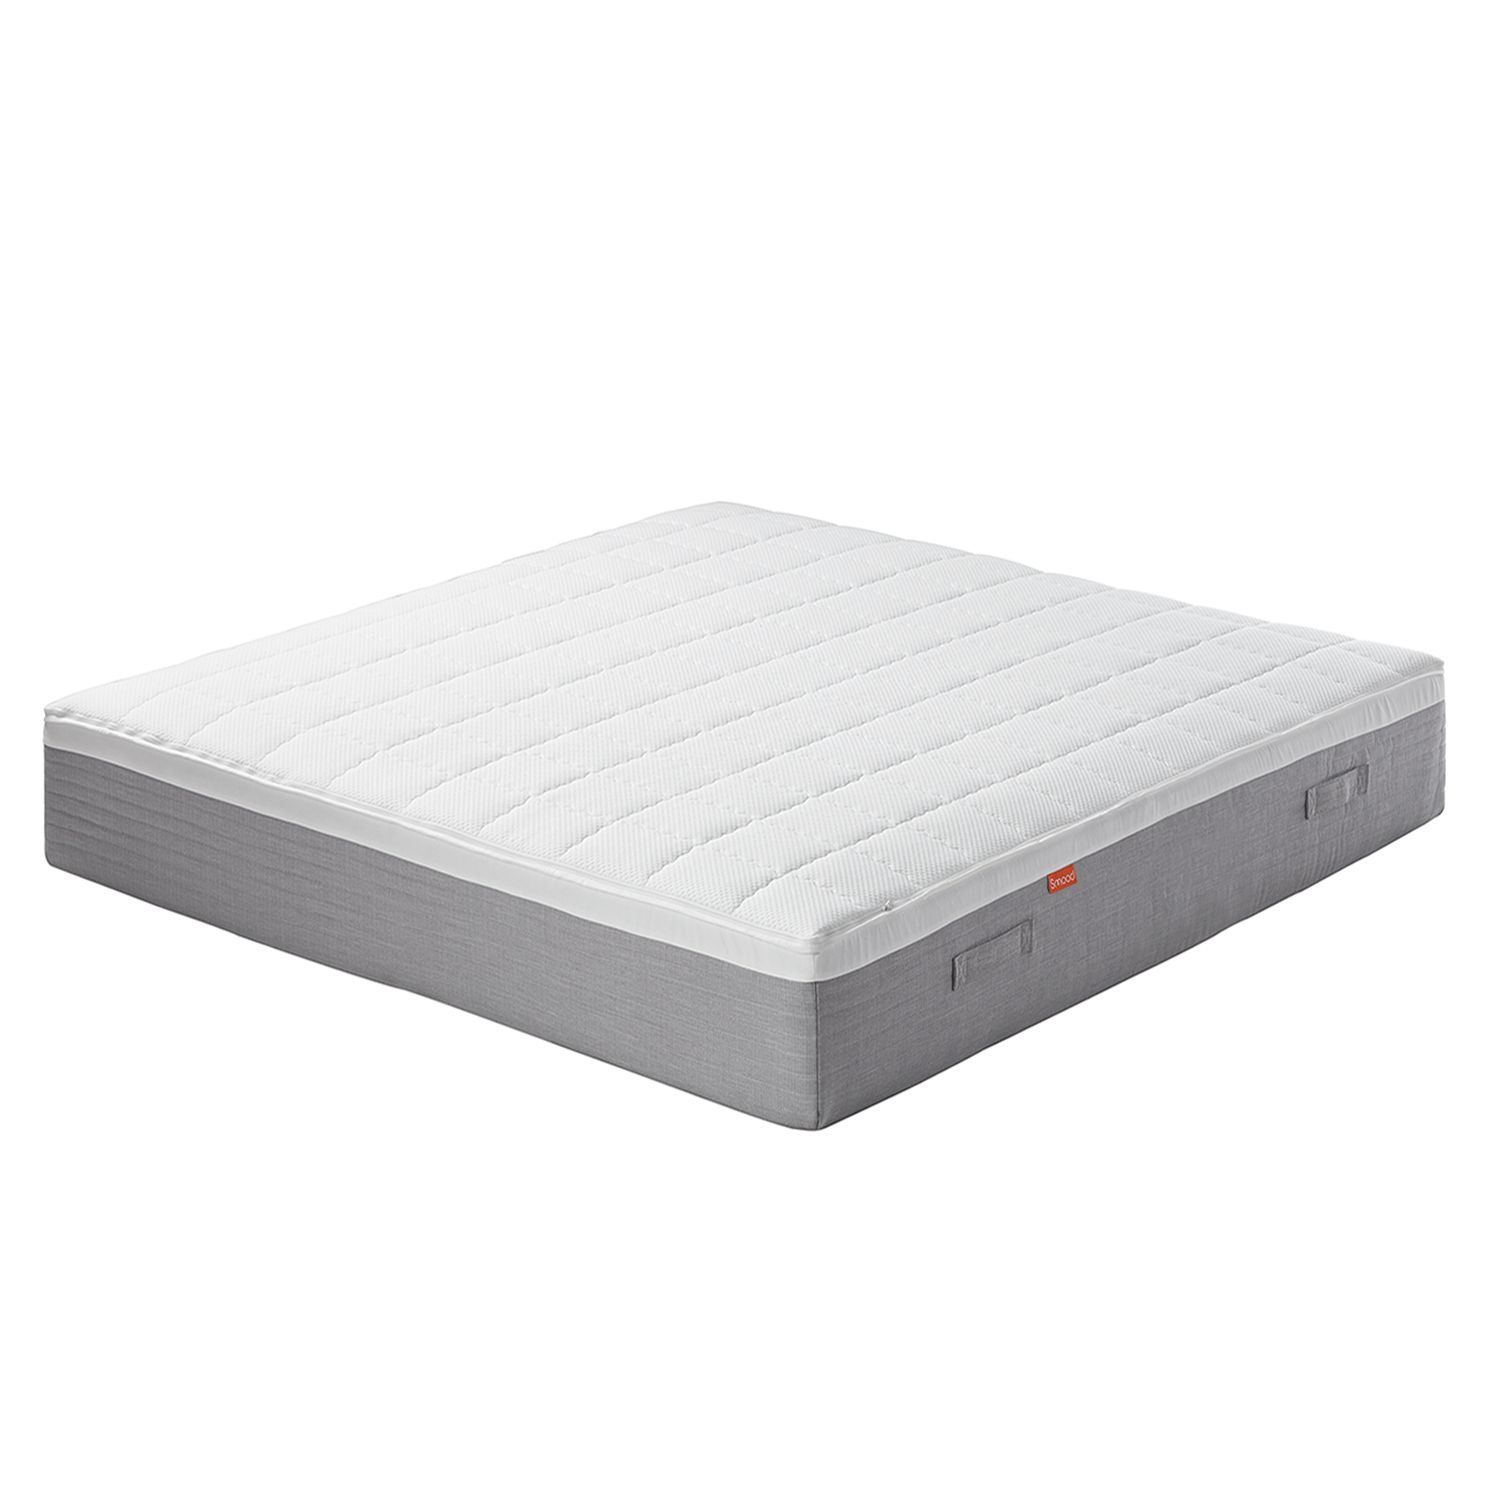 Matelas boxspring Smood Select - 200 x 200cm, Smood